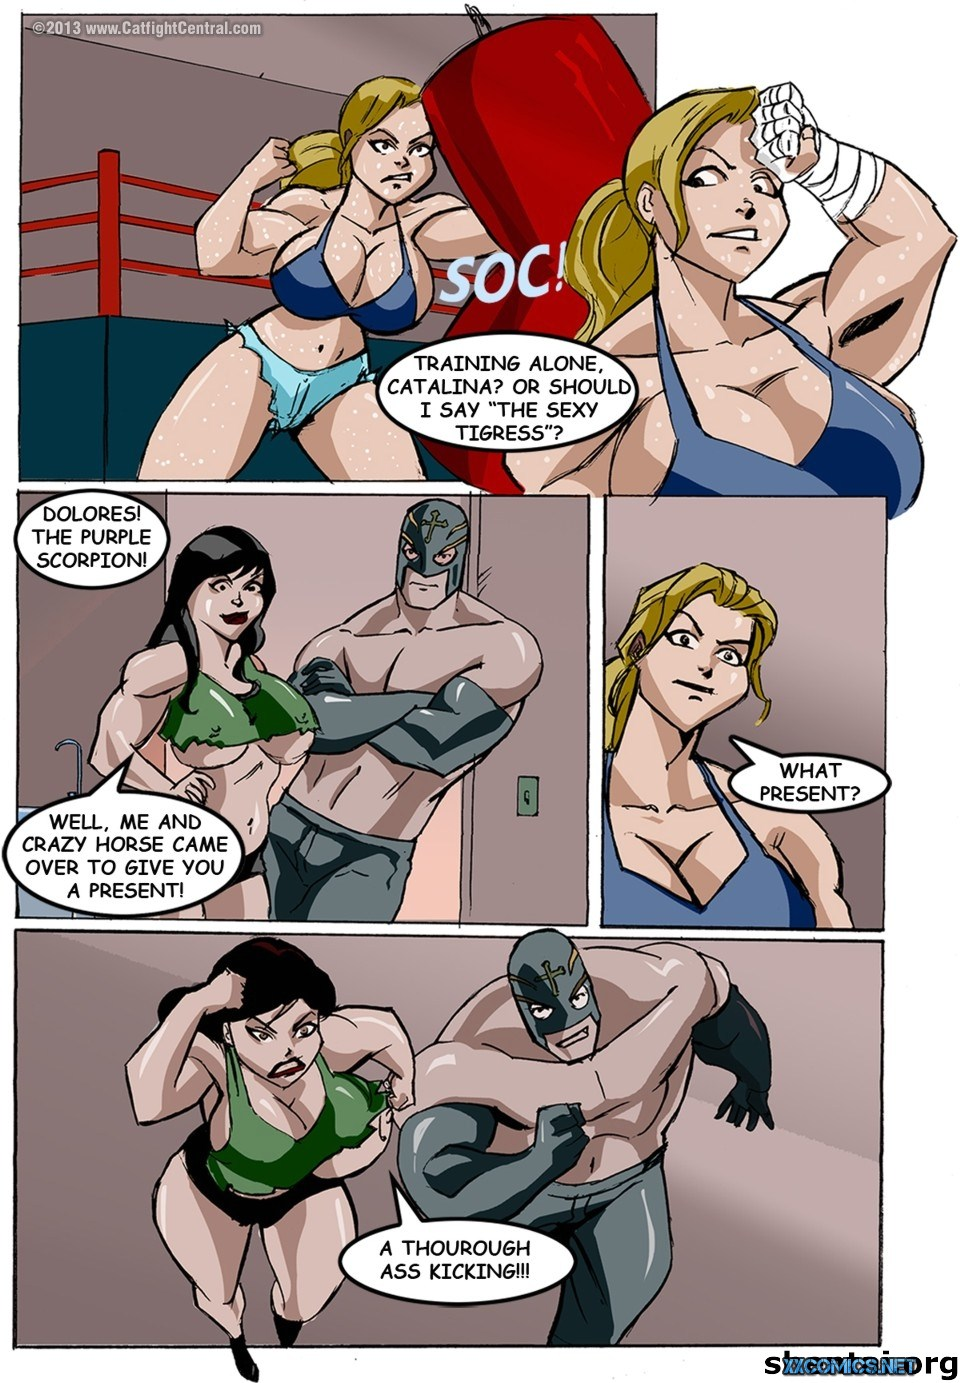 Lucha Libre XXX Part 4 & 7- Catfight porn comics 8 muses